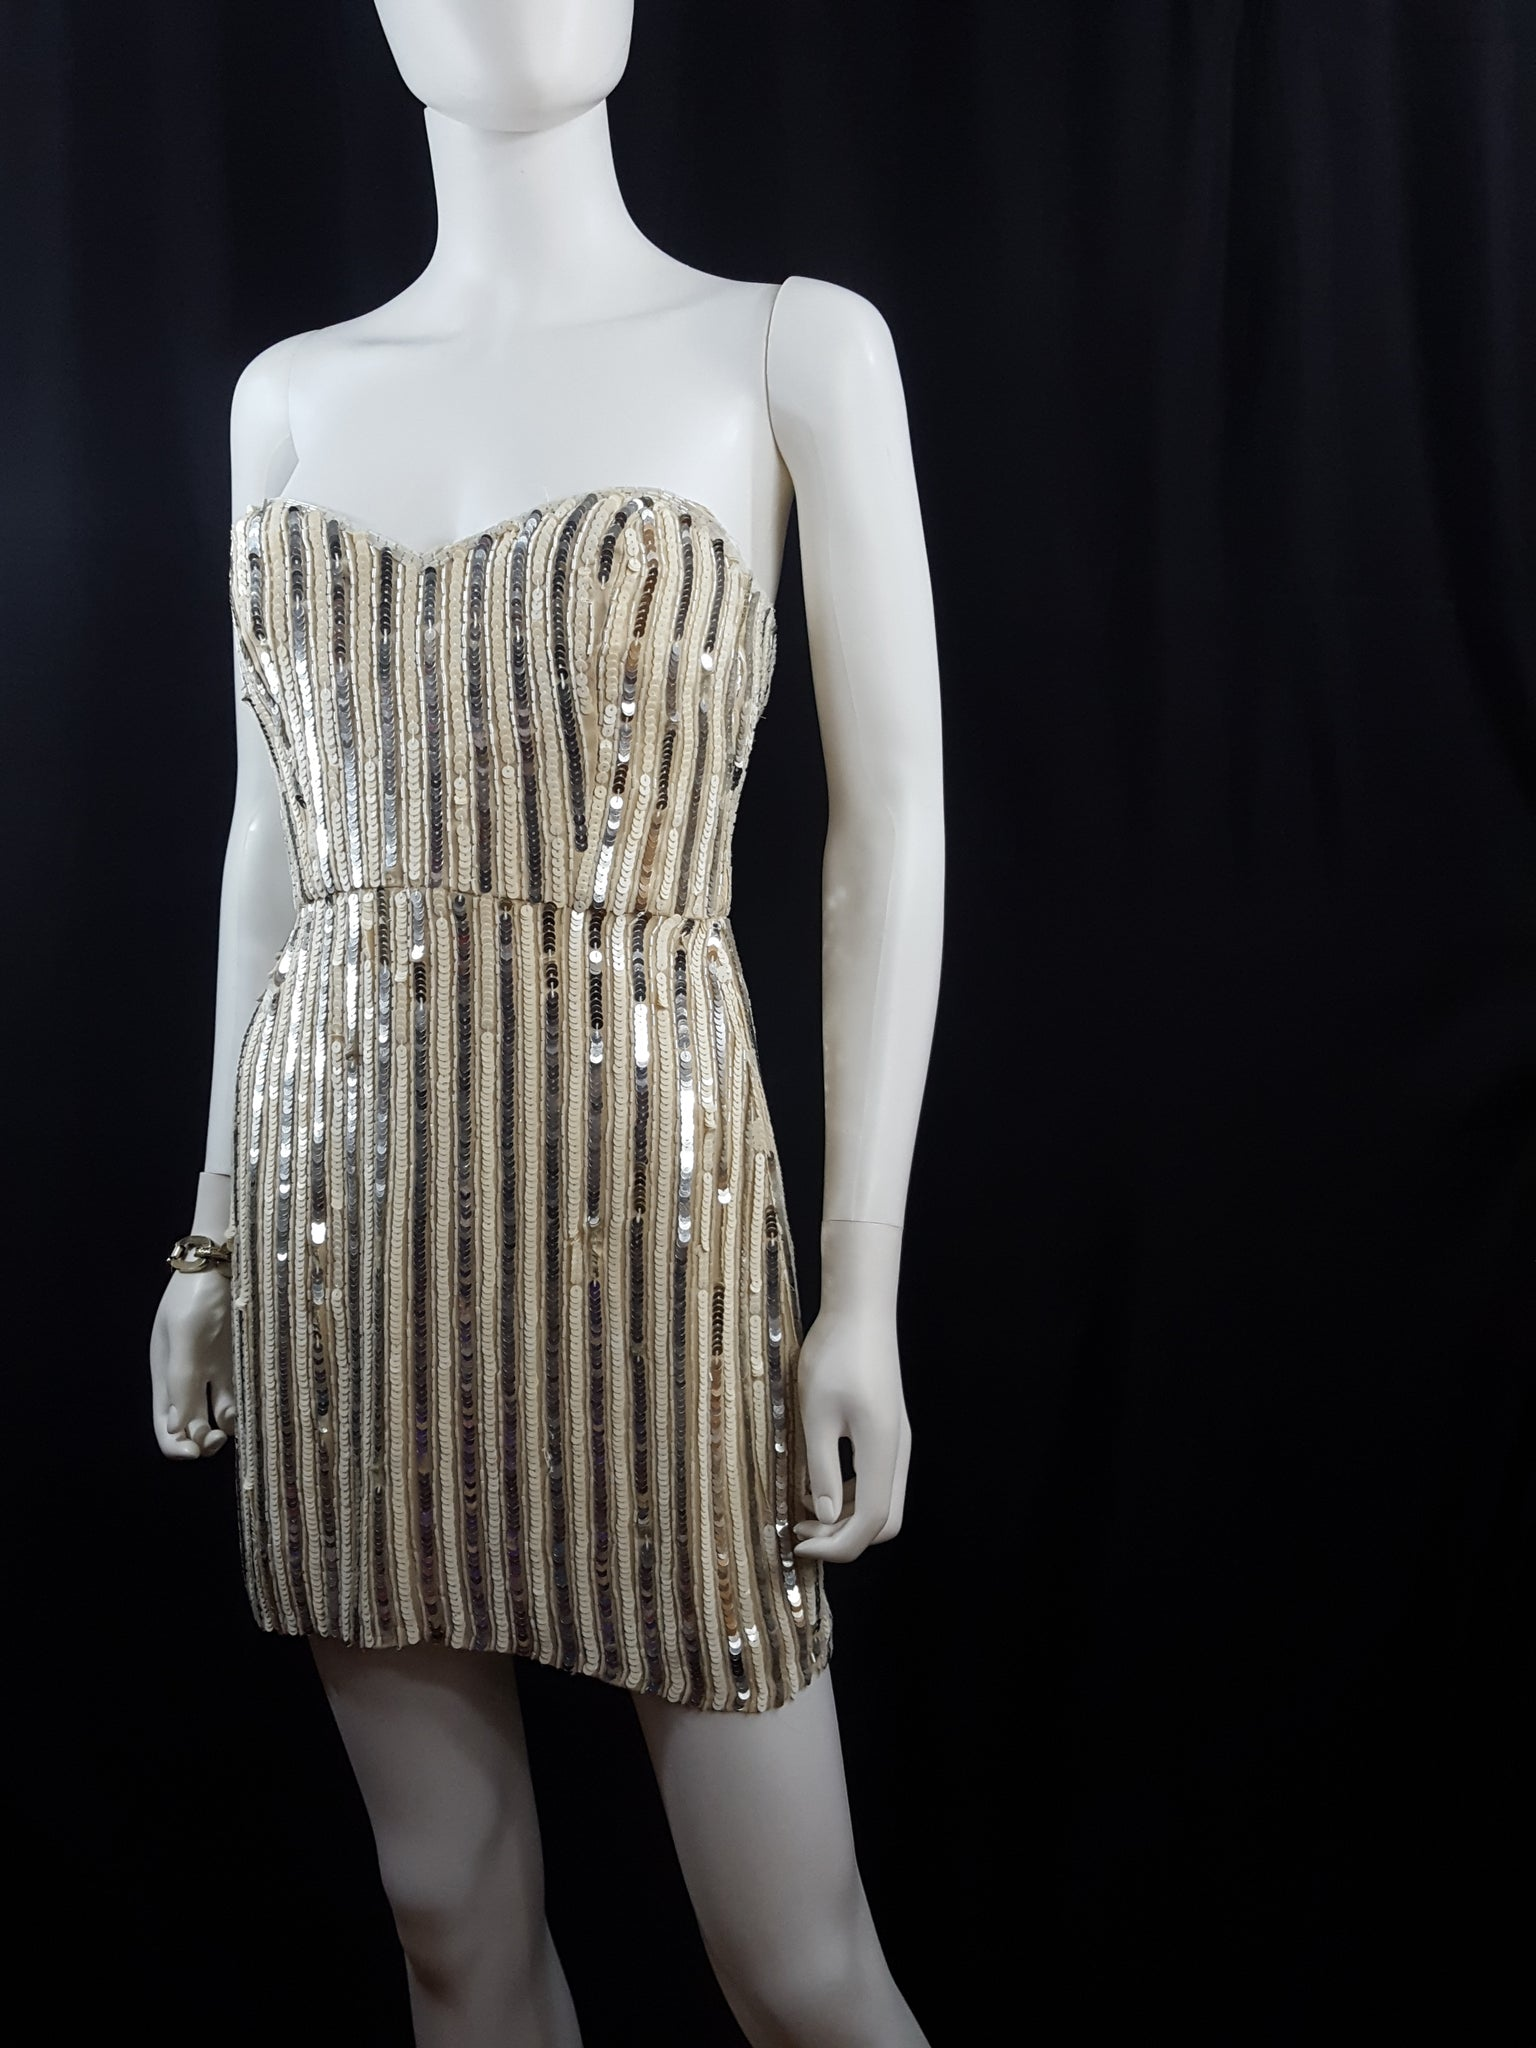 Parker Sequin Mini Cocktail Dress sz. S